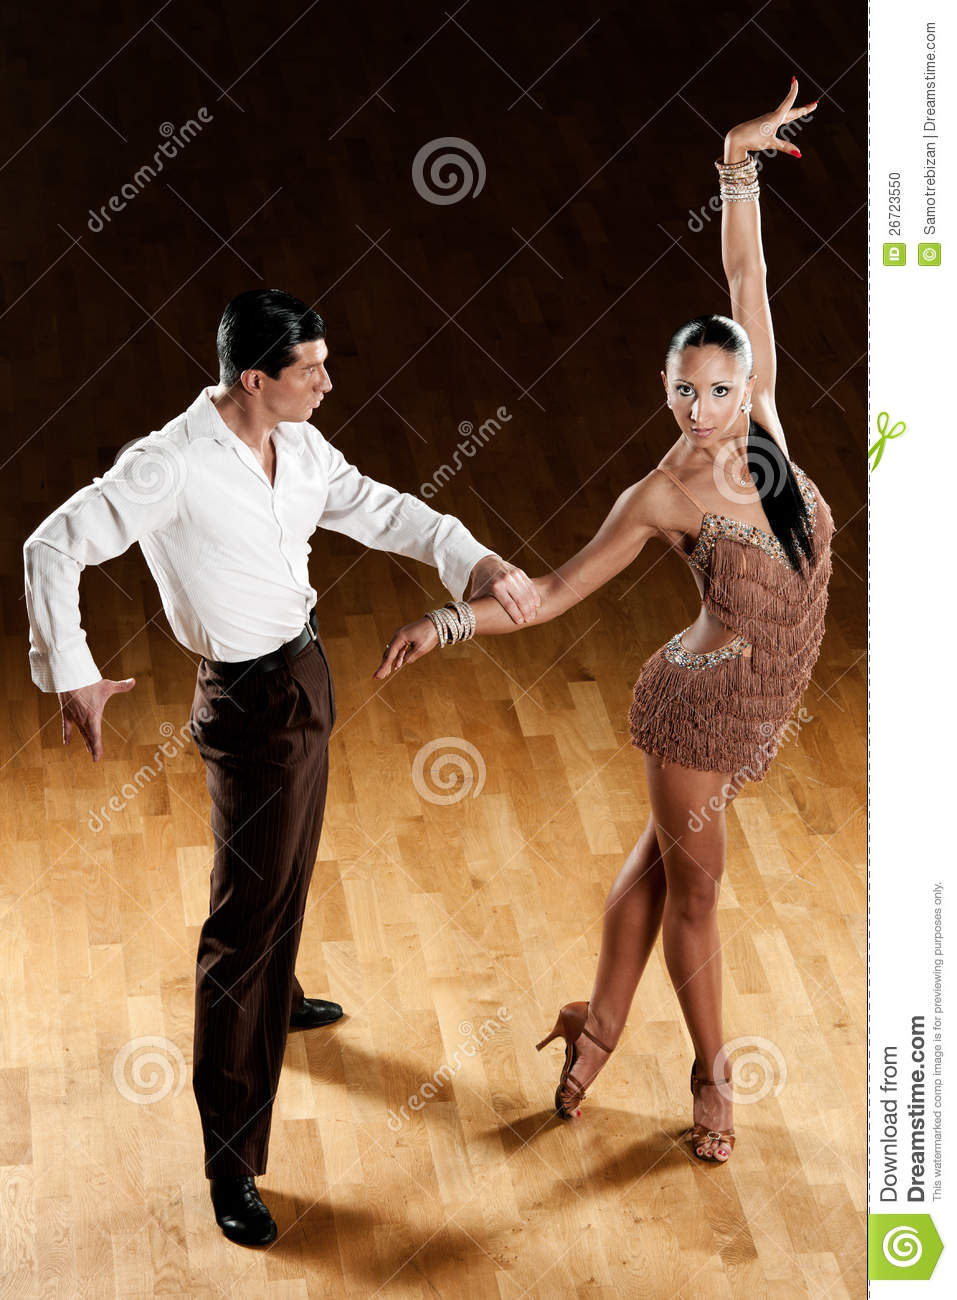 Stock Images Of Exercise Rumba Dance Stock Photo Image Of Movement Beautiful